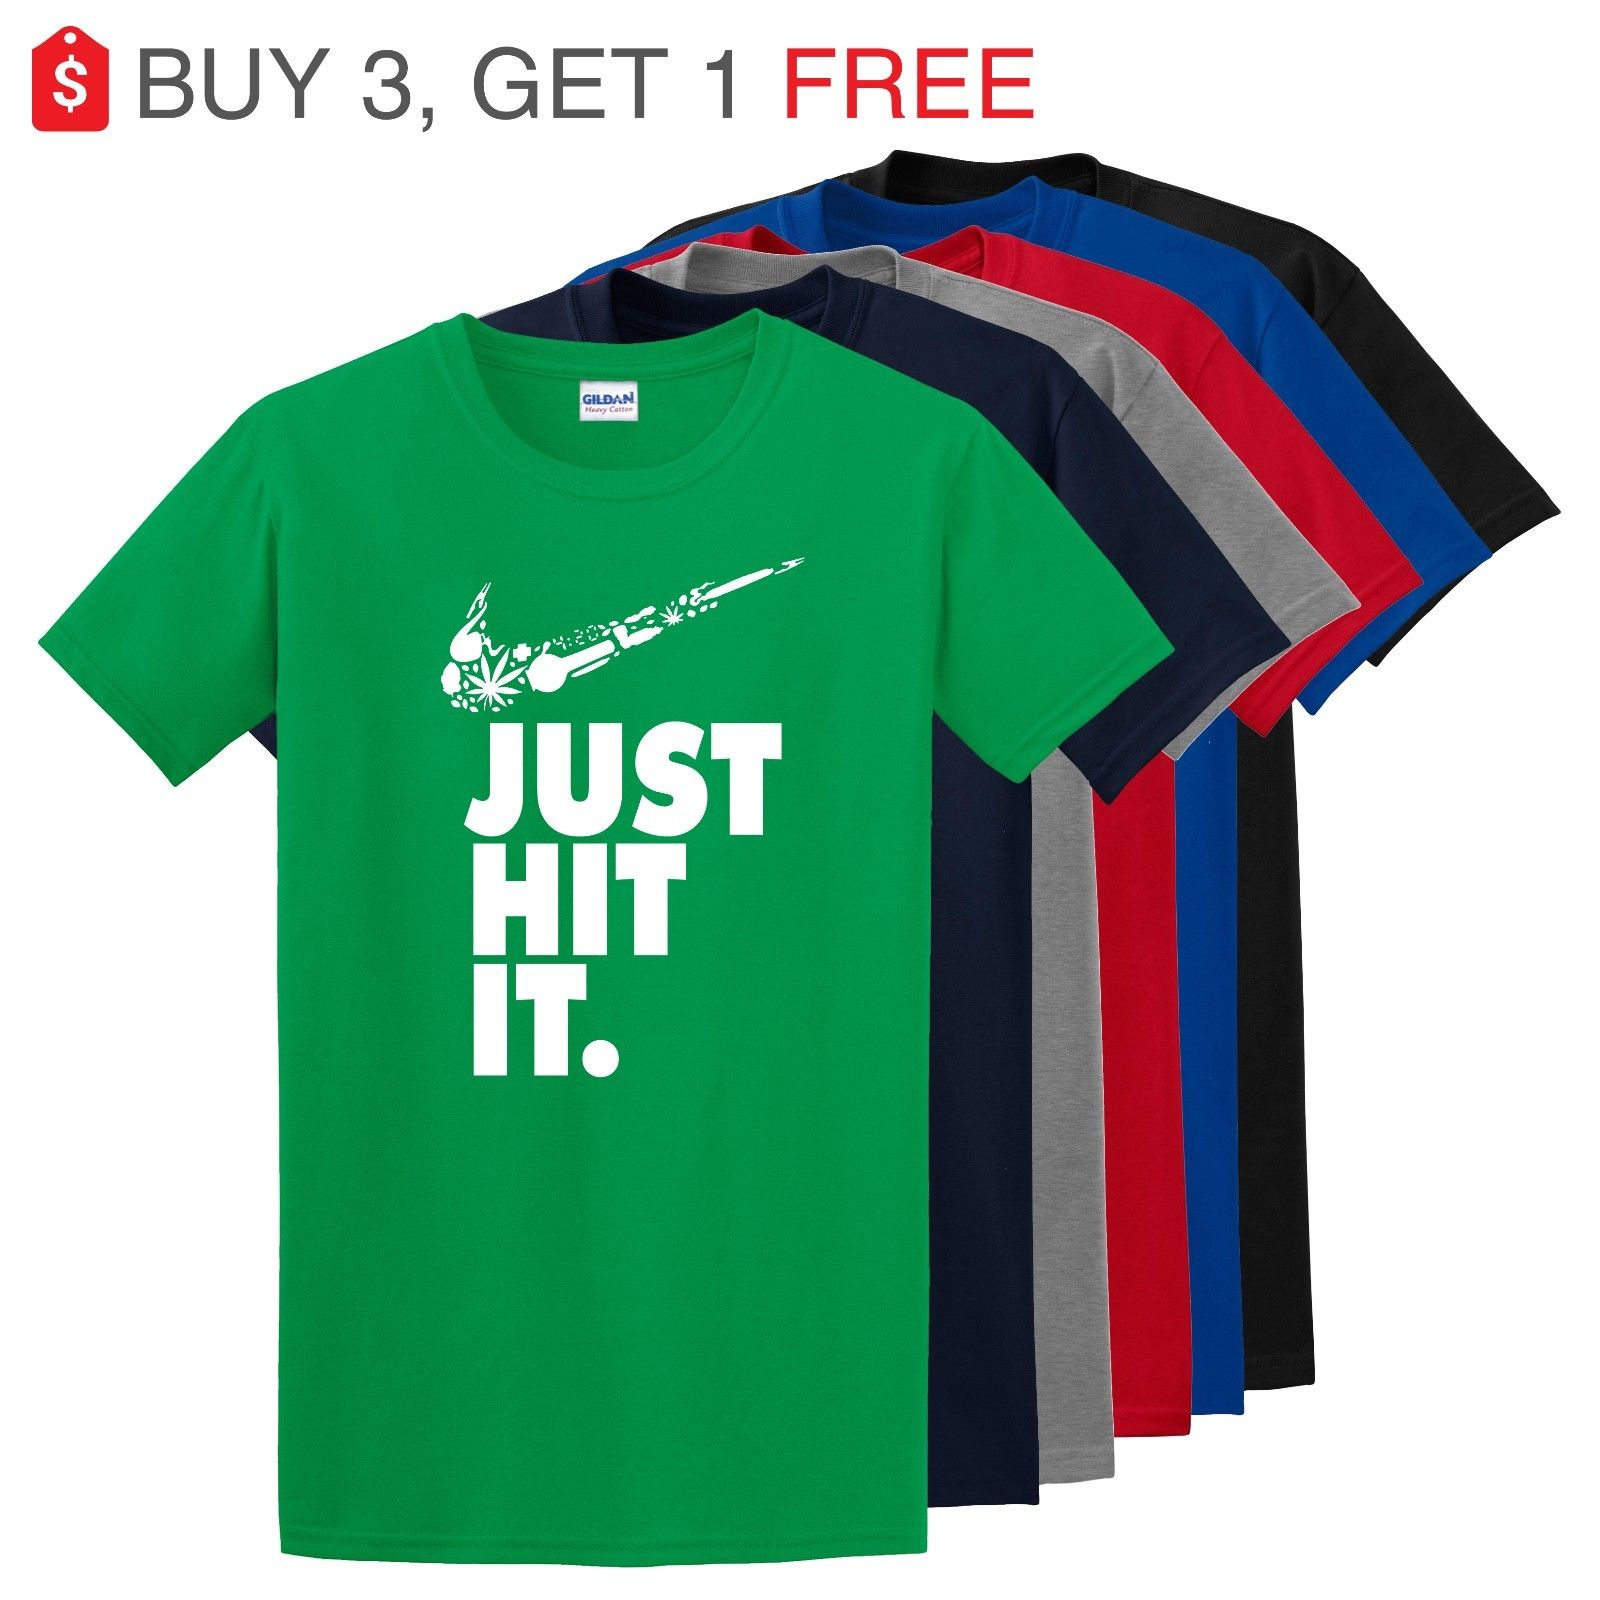 Nike Just Hit Funny Marijuana Weed Pot 420 Black T Shirt Just do it Festival Tee 1